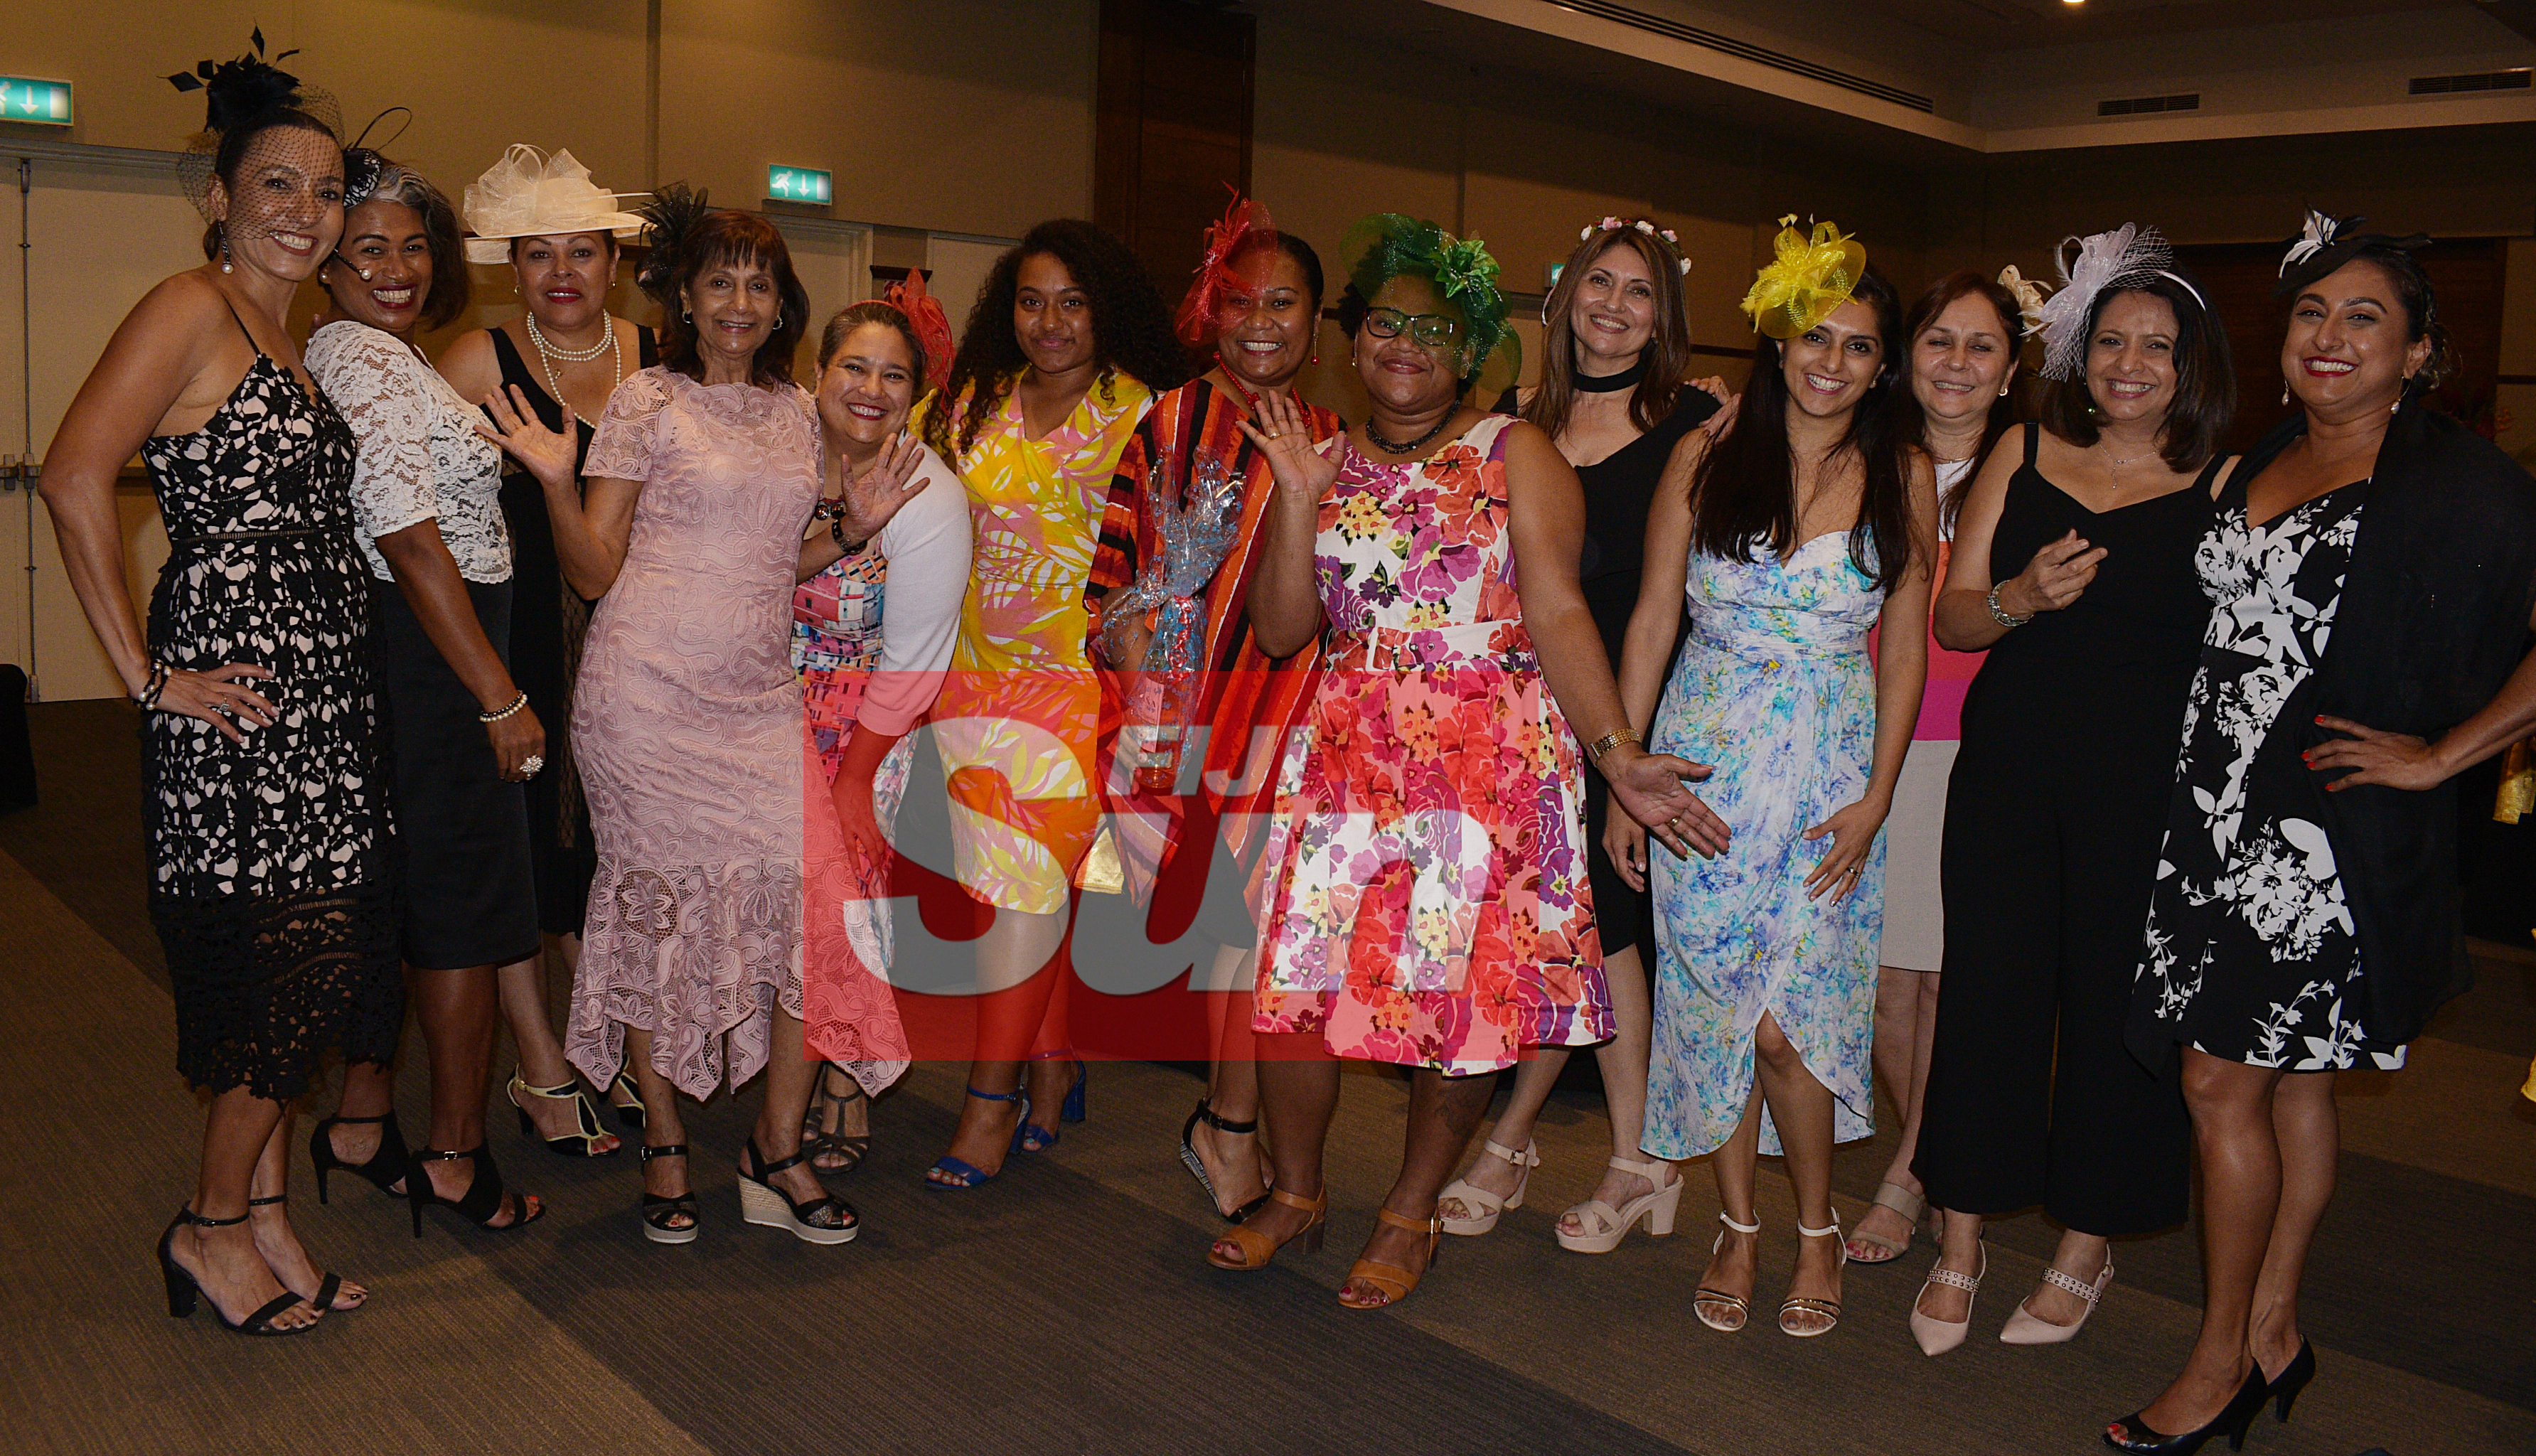 Ladies with their special Melbourne cup hats during Rotary Club Suva organized Melbourne Cup race event at Grand Pacific Hotel on November 5, 2019. Photo: Ronald Kumar.